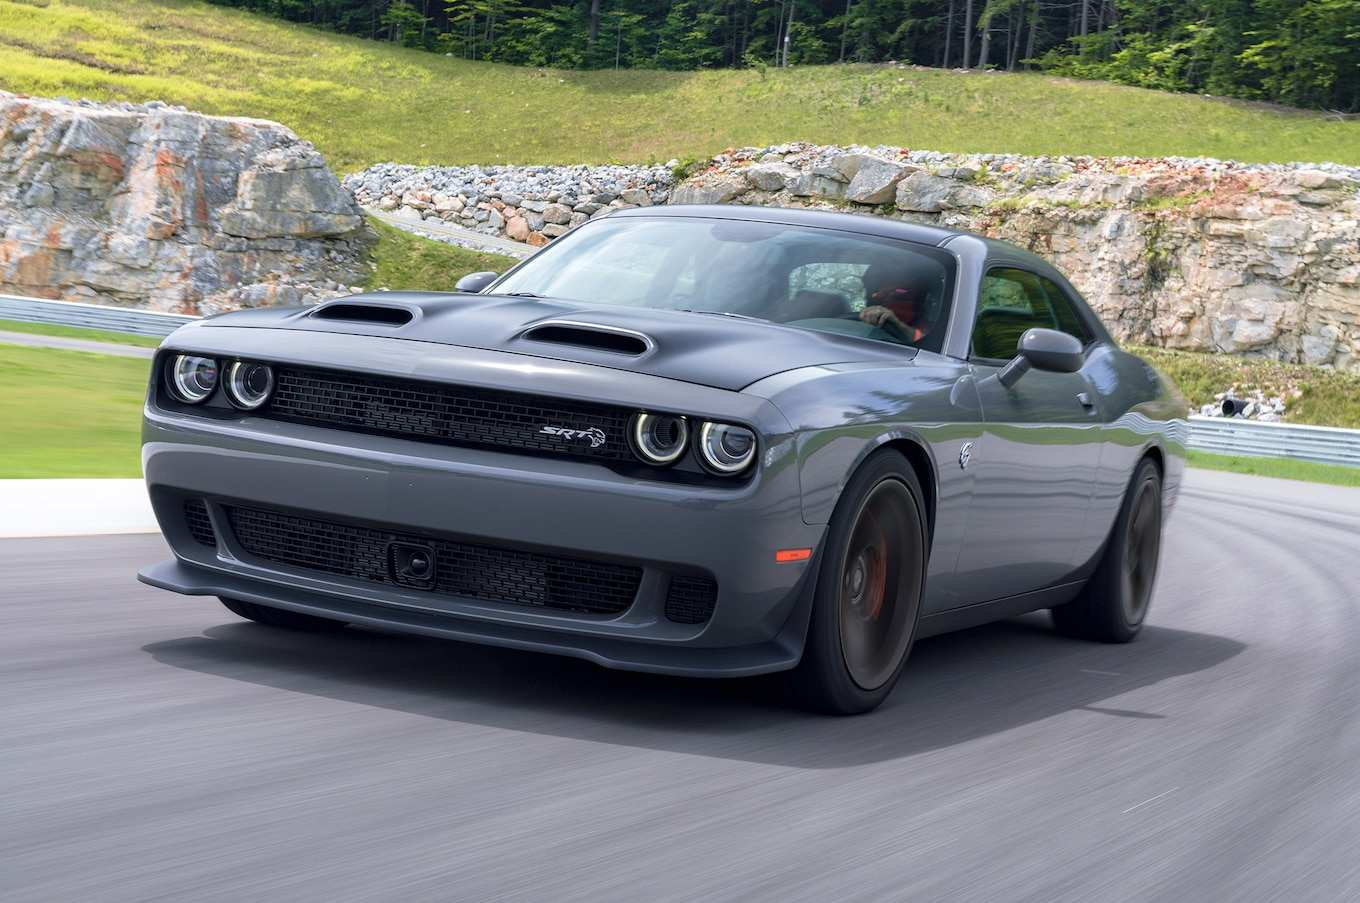 11 Concept of 2019 Dodge Challenger News New Review by 2019 Dodge Challenger News